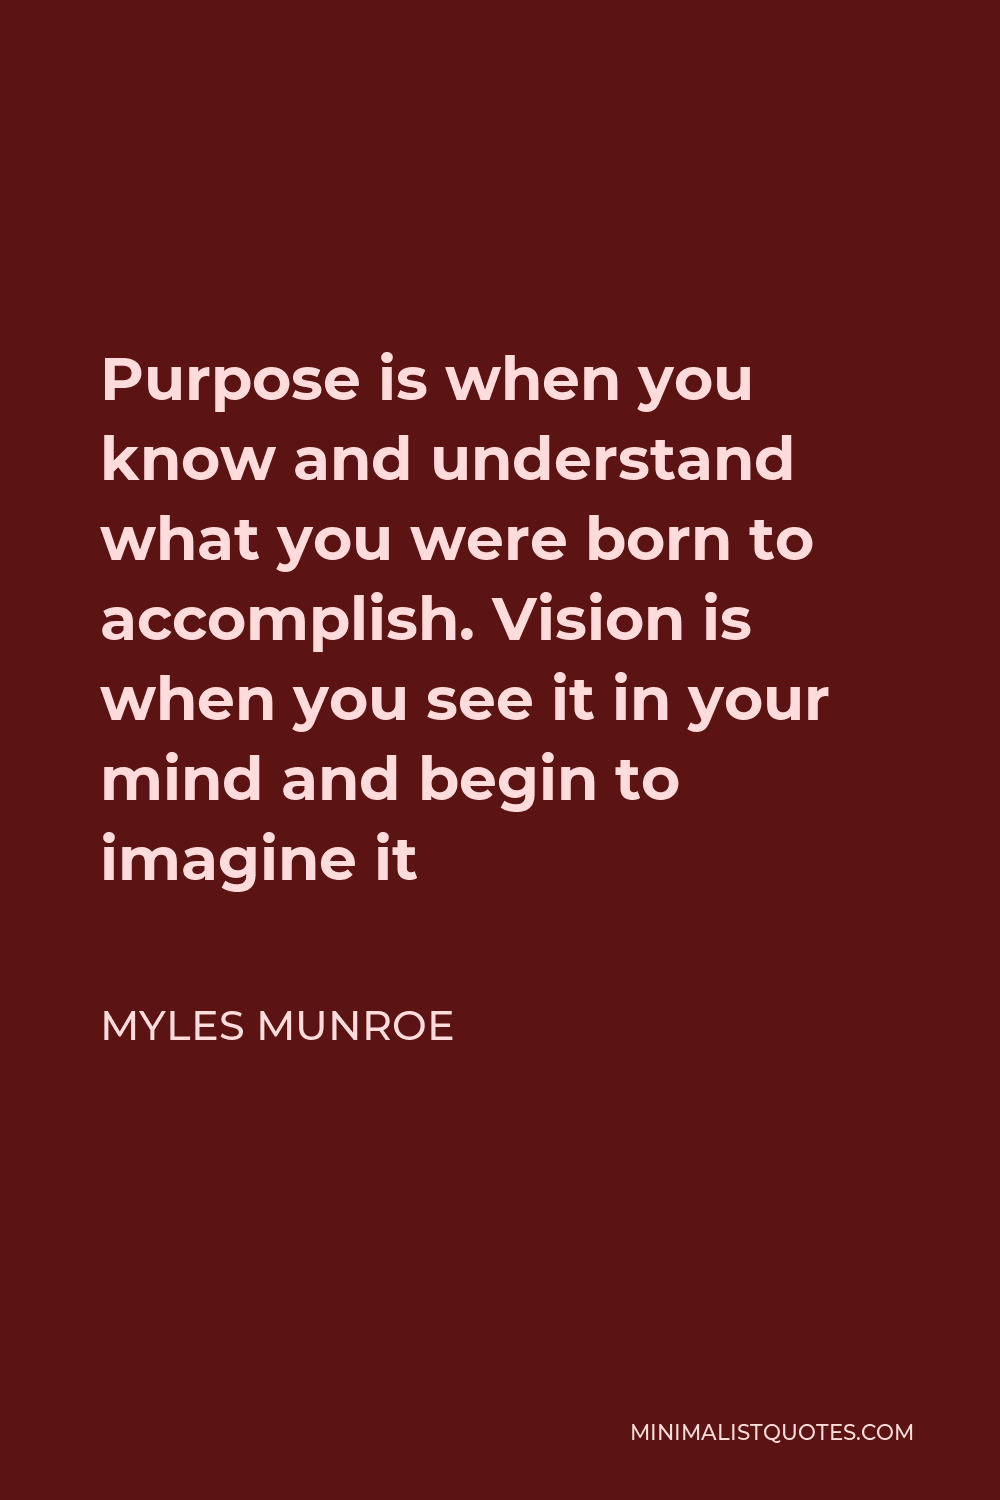 Myles Munroe Quote - Purpose is when you know and understand what you were born to accomplish. Vision is when you see it in your mind and begin to imagine it